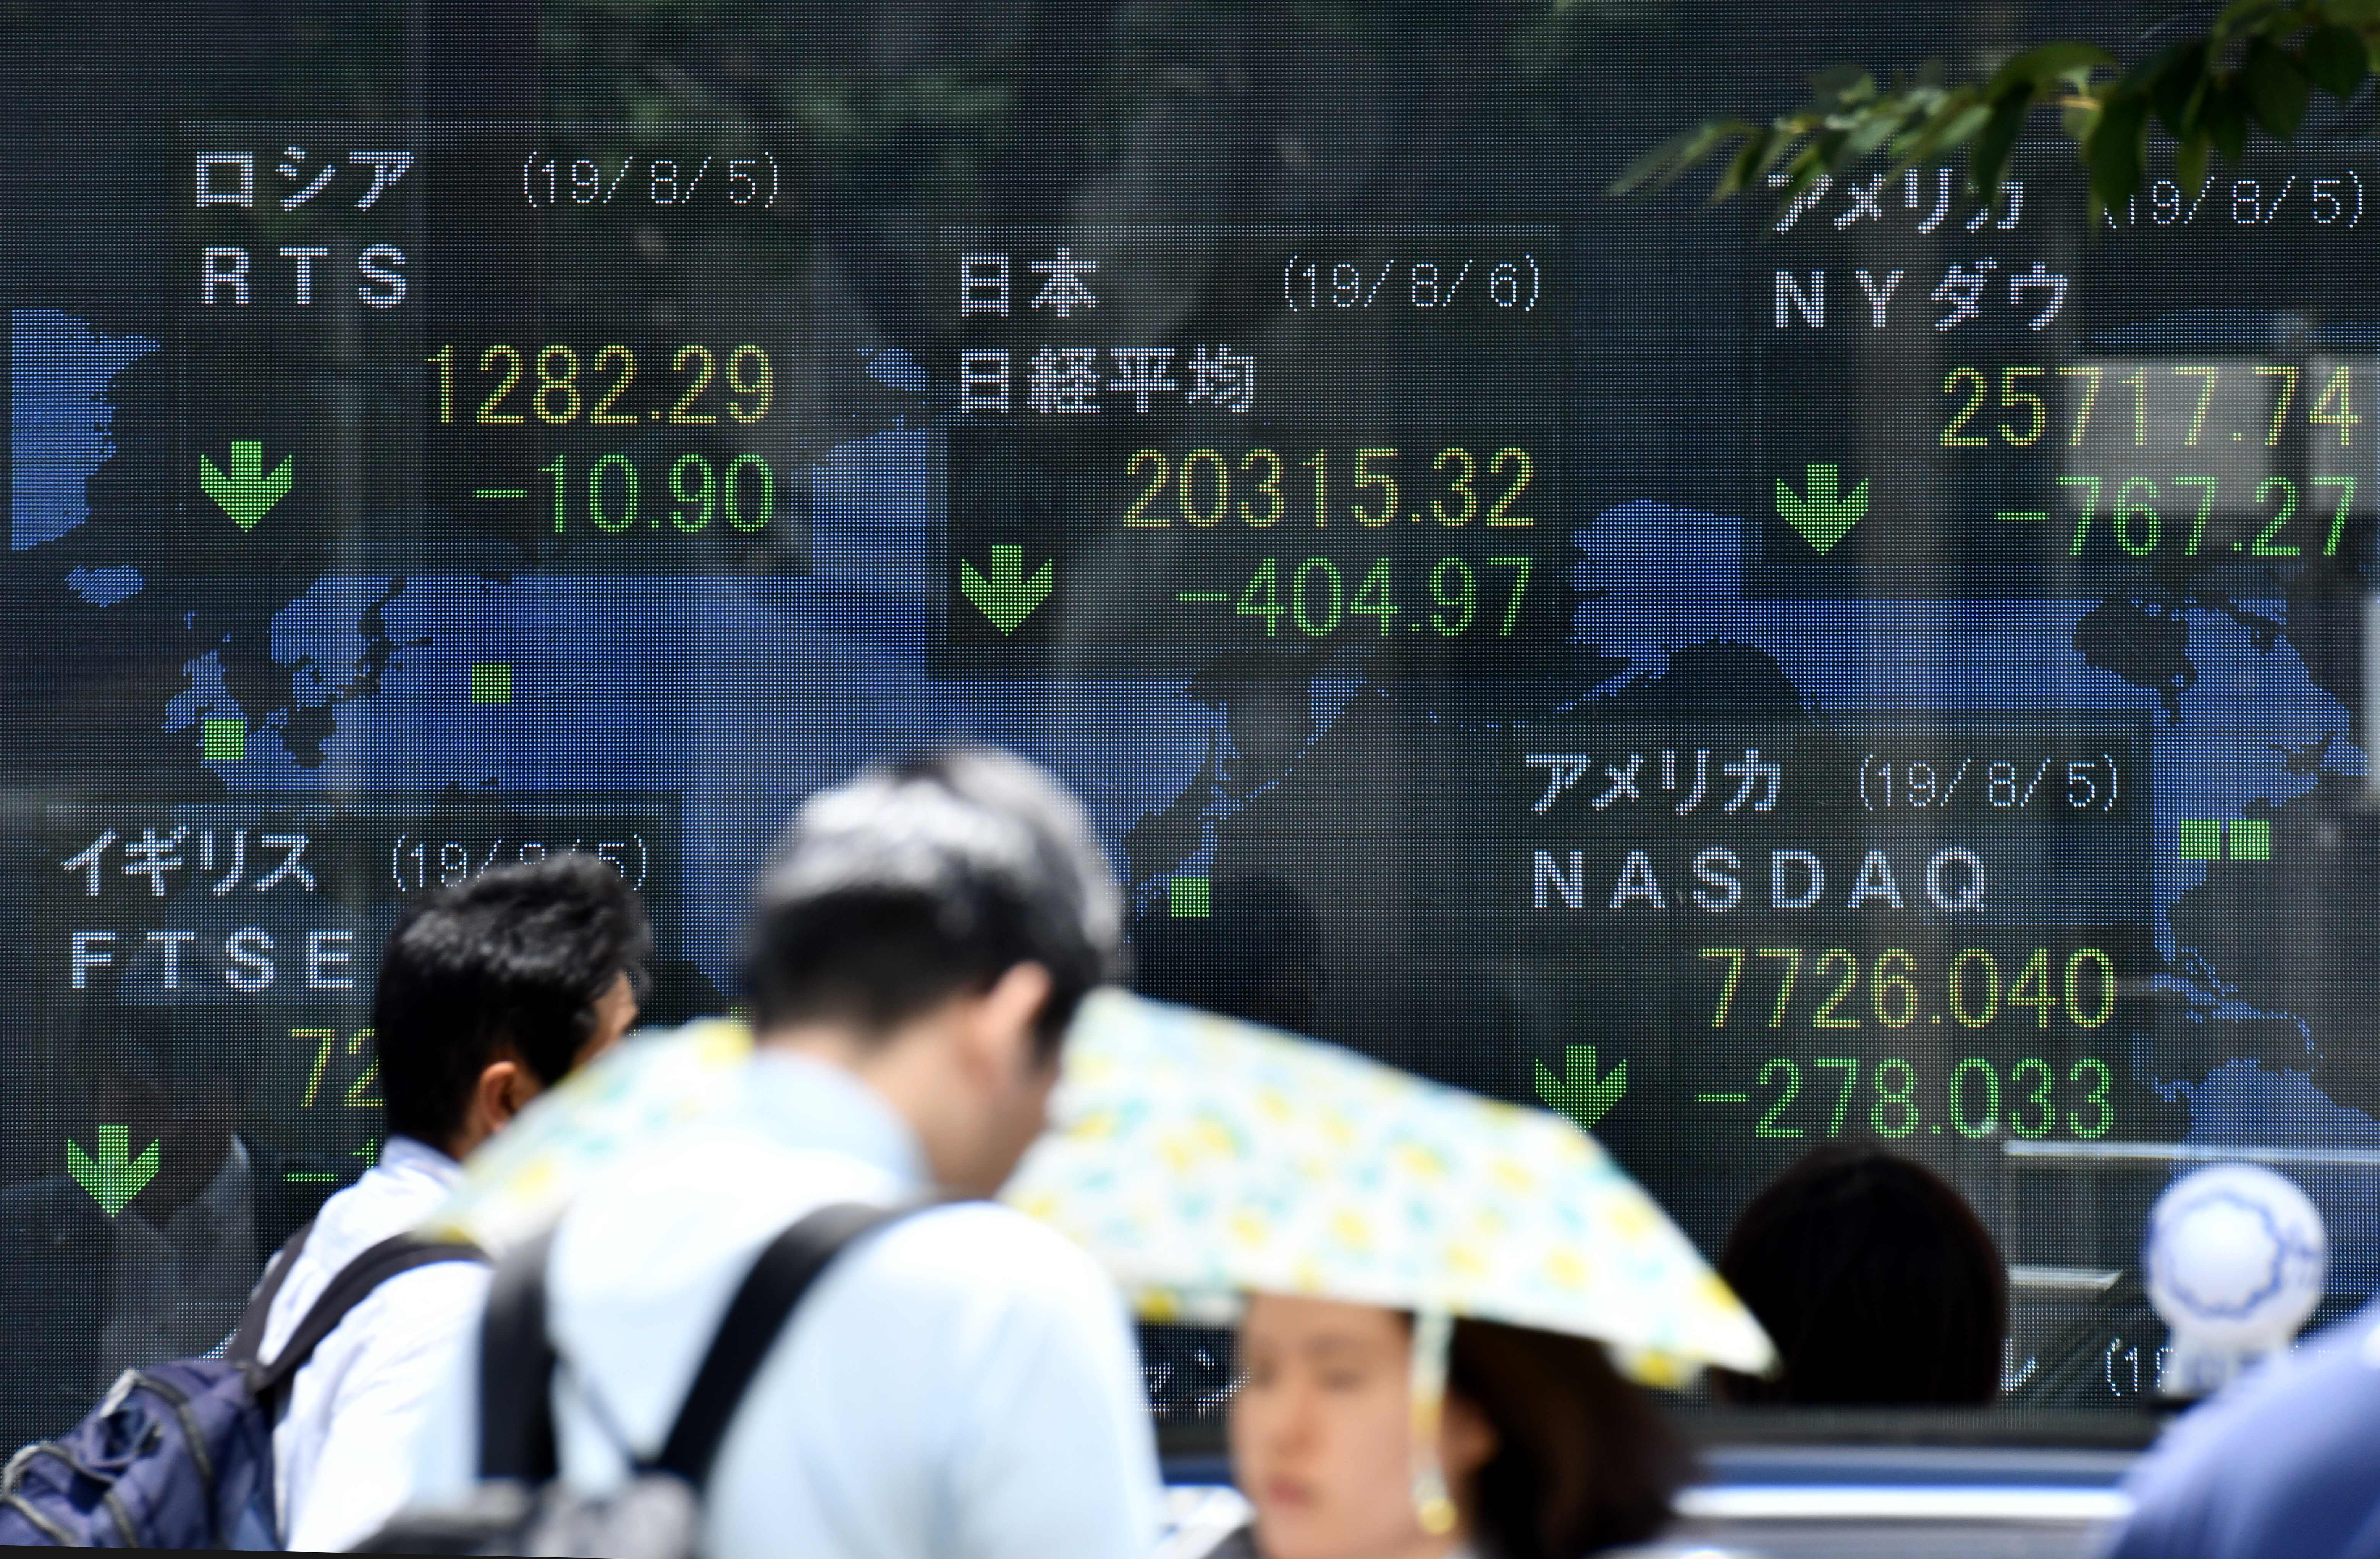 www.cnbc.com: Asia-Pacific markets mixed as U.S. stocks rally; Australia's jobless rate hits 22-year high